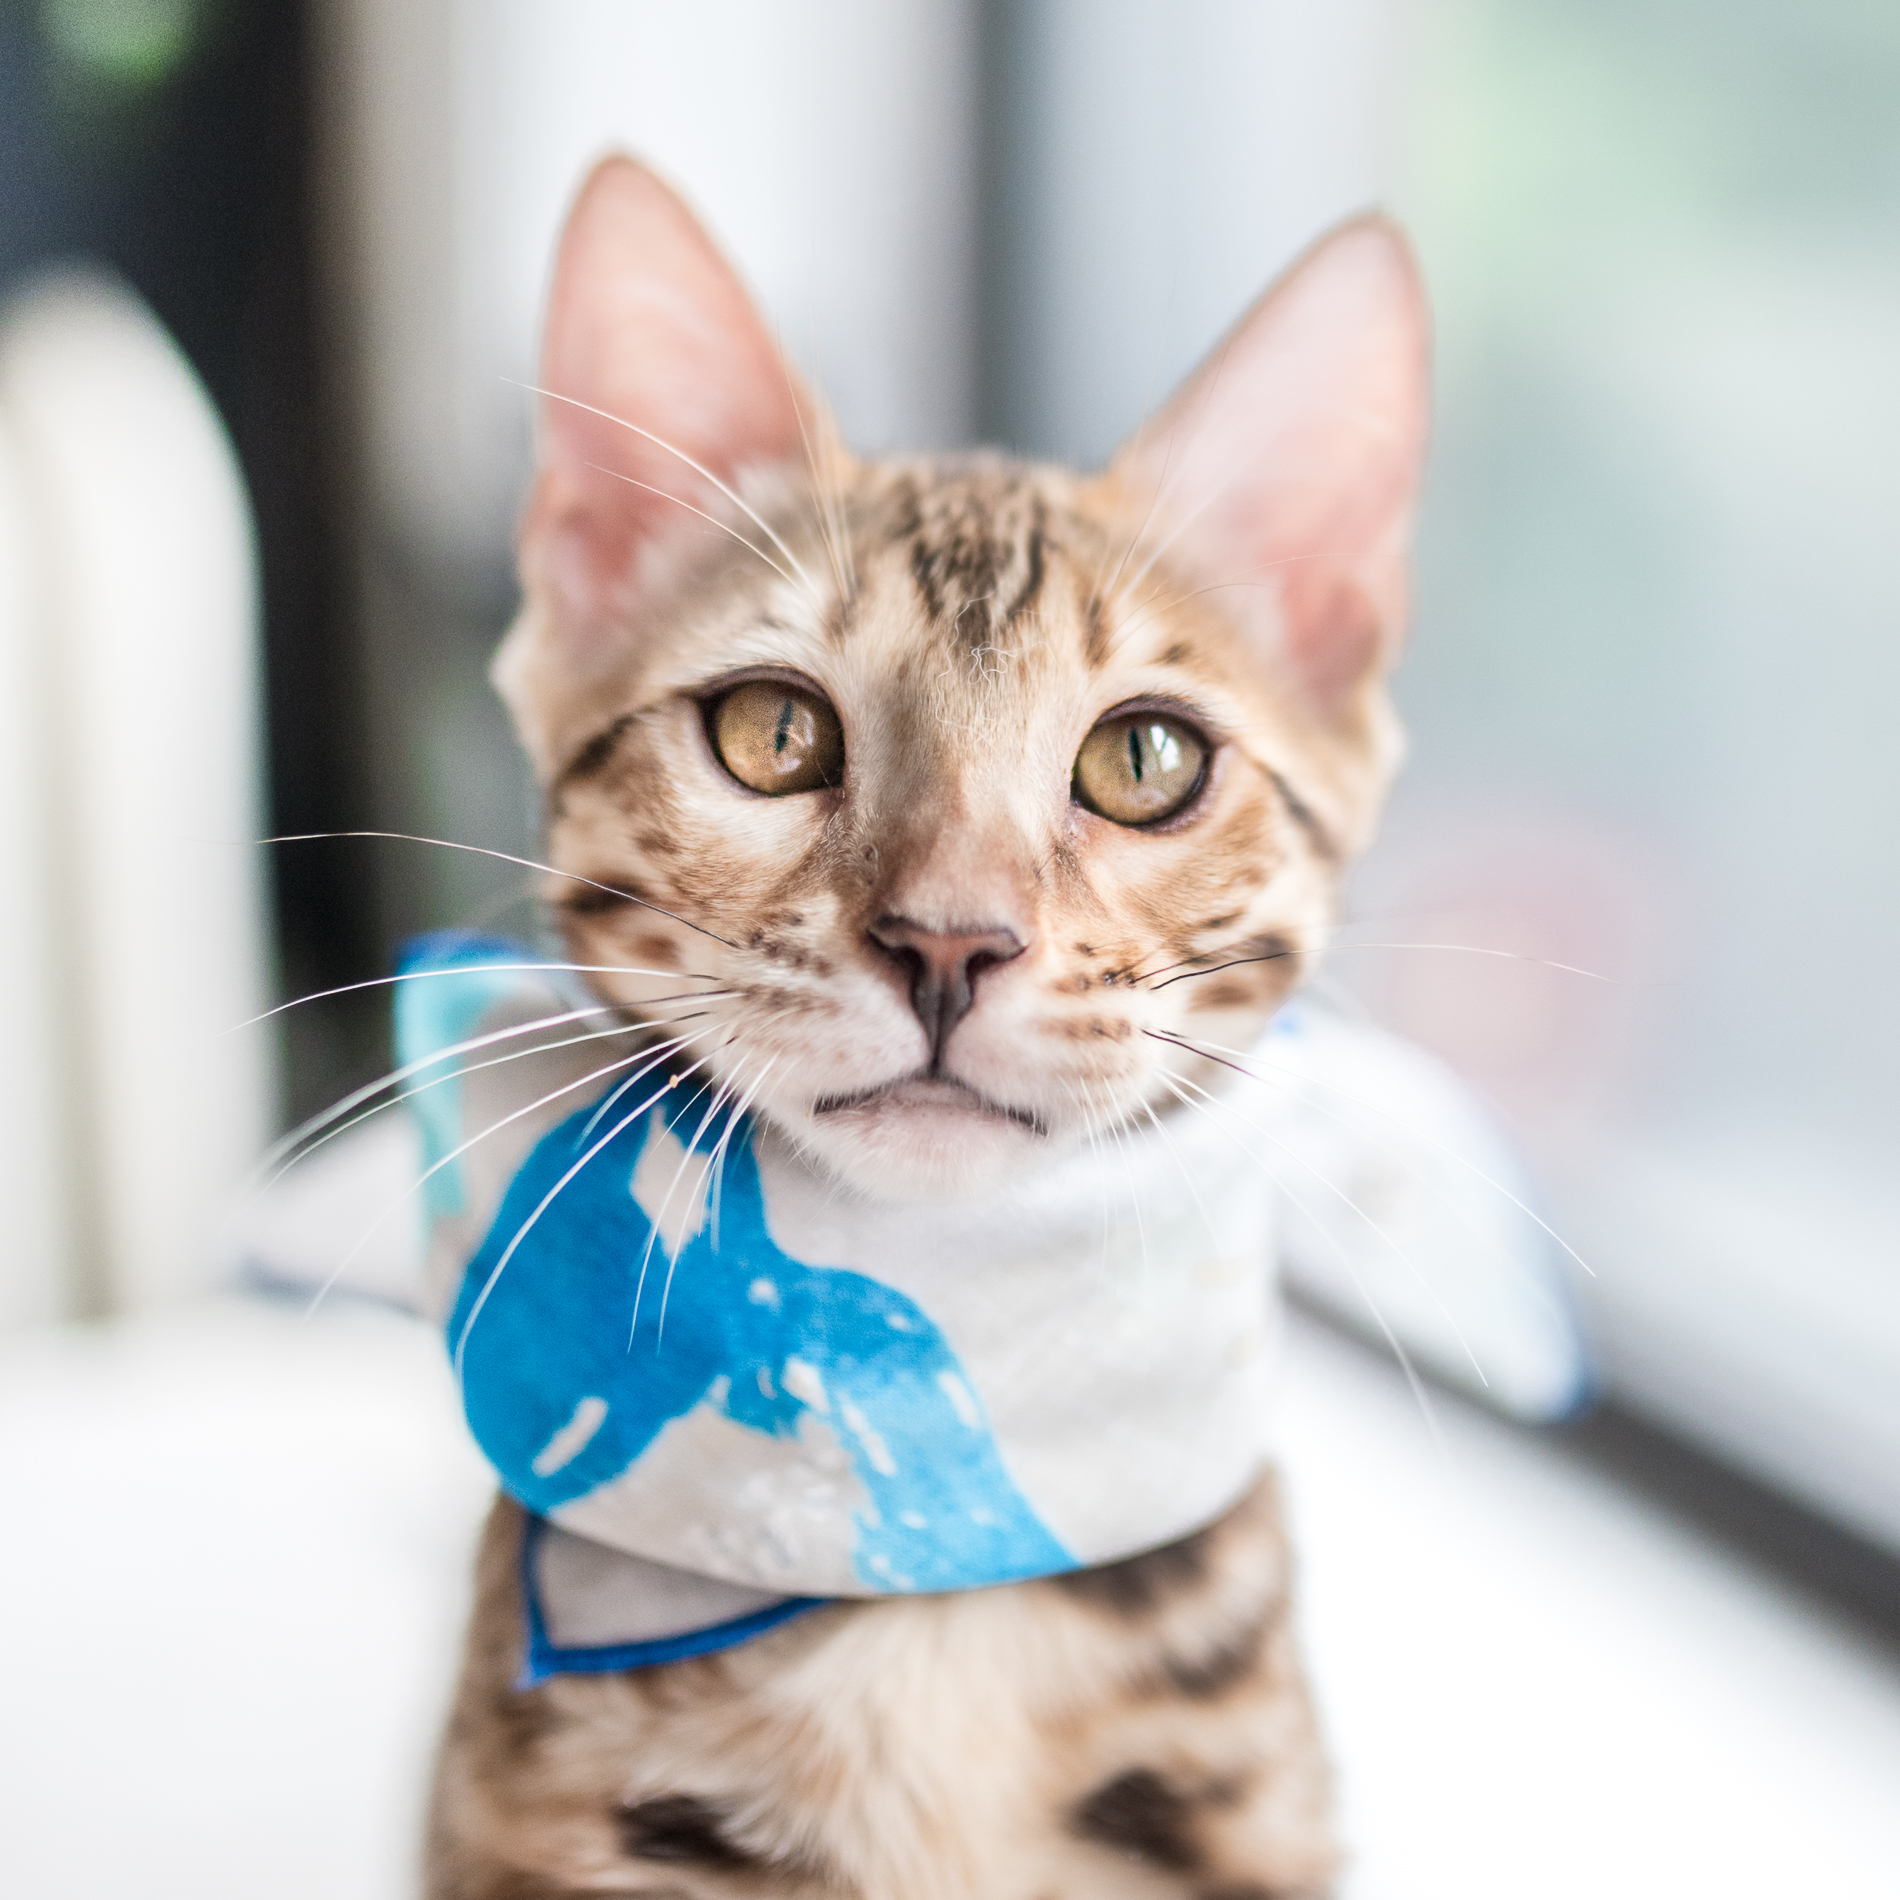 Orion - Ori is a Bengal and the youngest one in the family. He is a bundle of energy and loves playing with his big brother Leo. He is also affectionately known as the hungry, hungry hippo for his food and treat stealing tendencies.